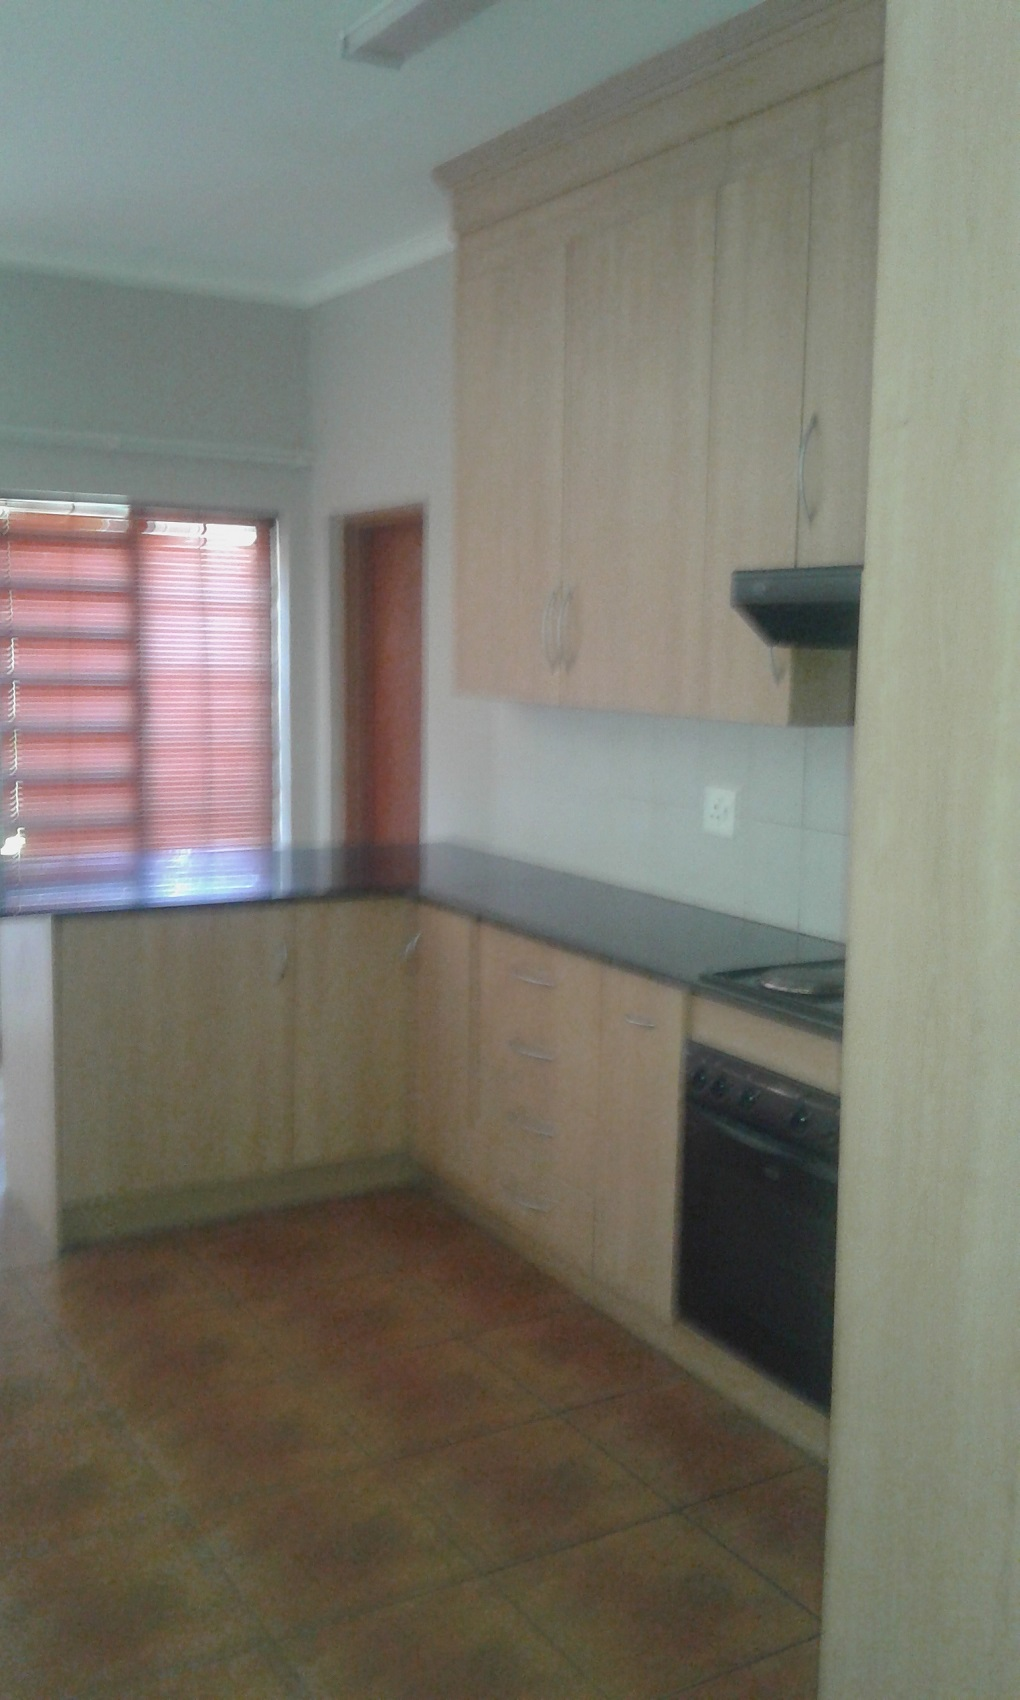 3 Bedroom House for sale in Burgersfort ENT0015717 : photo#9